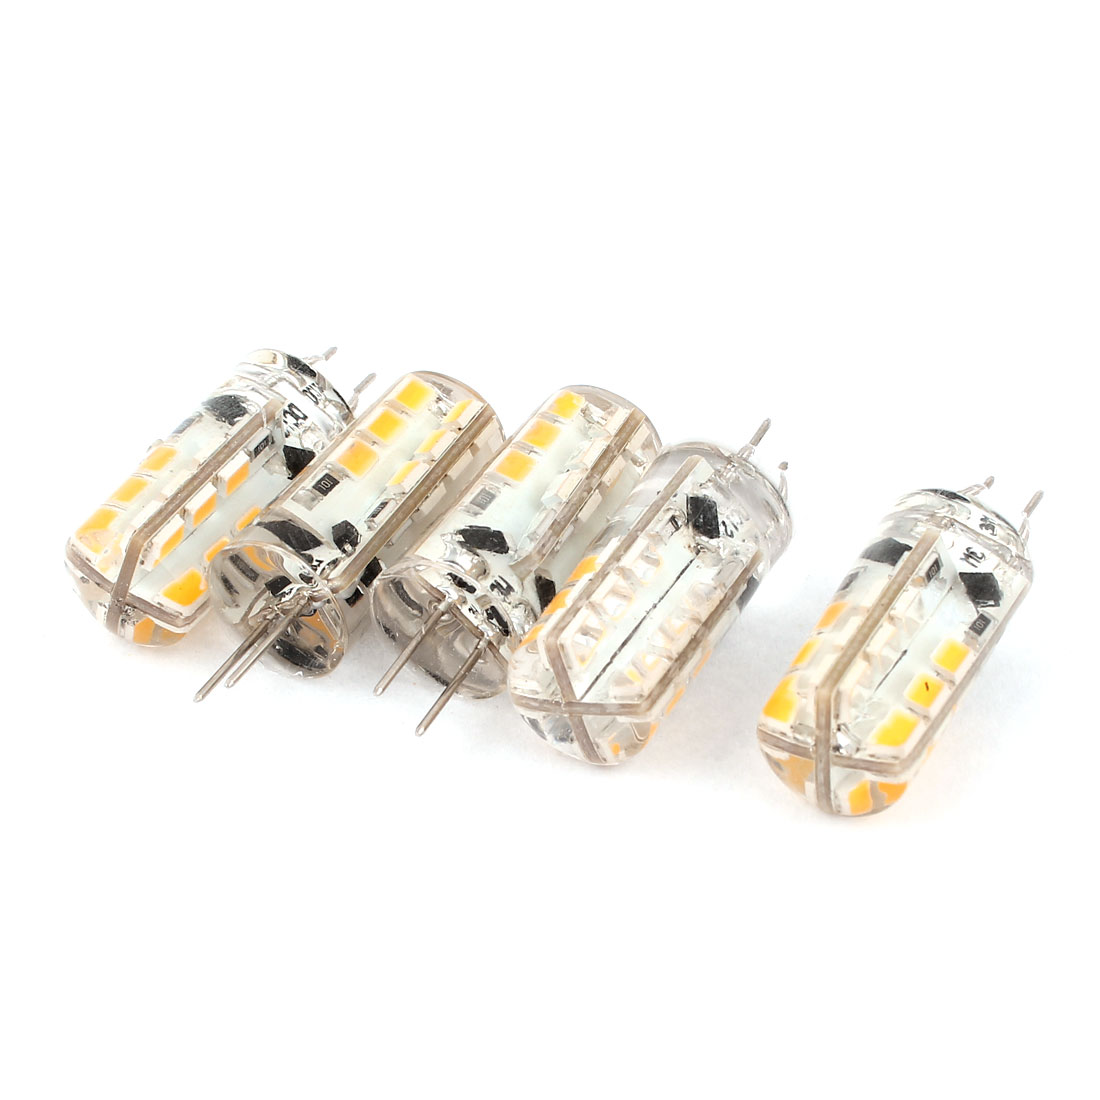 5 x Energy Saving G4 2.5W SMD 24 LED Bulb Light Lamp Warm White DC 12V